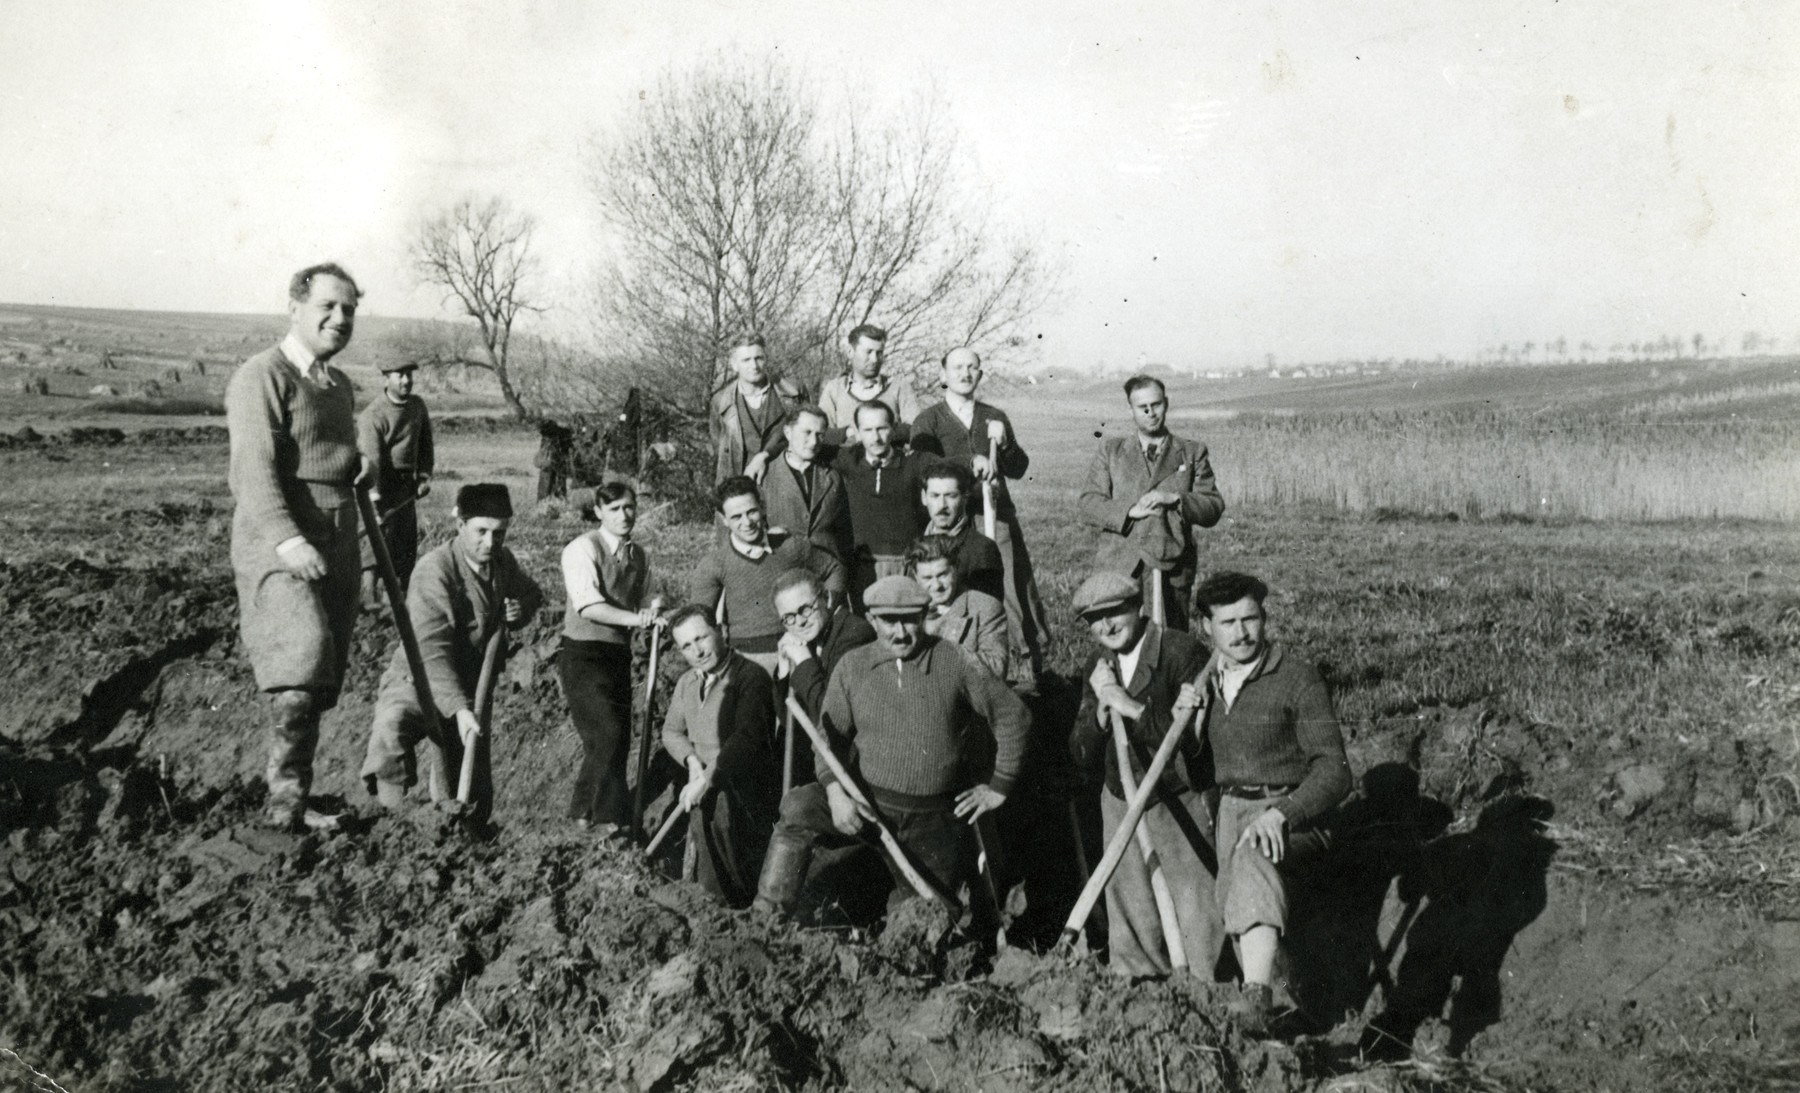 A forced labor battalion works on the western border of Hungary in 1942.  Pal Breuer is standing at the very left of the photo. Also pictured is Janos Neumann, in the middle of the first row.  He went missing on the Russian front during the  retreat of the Hungarian army in December 1942.